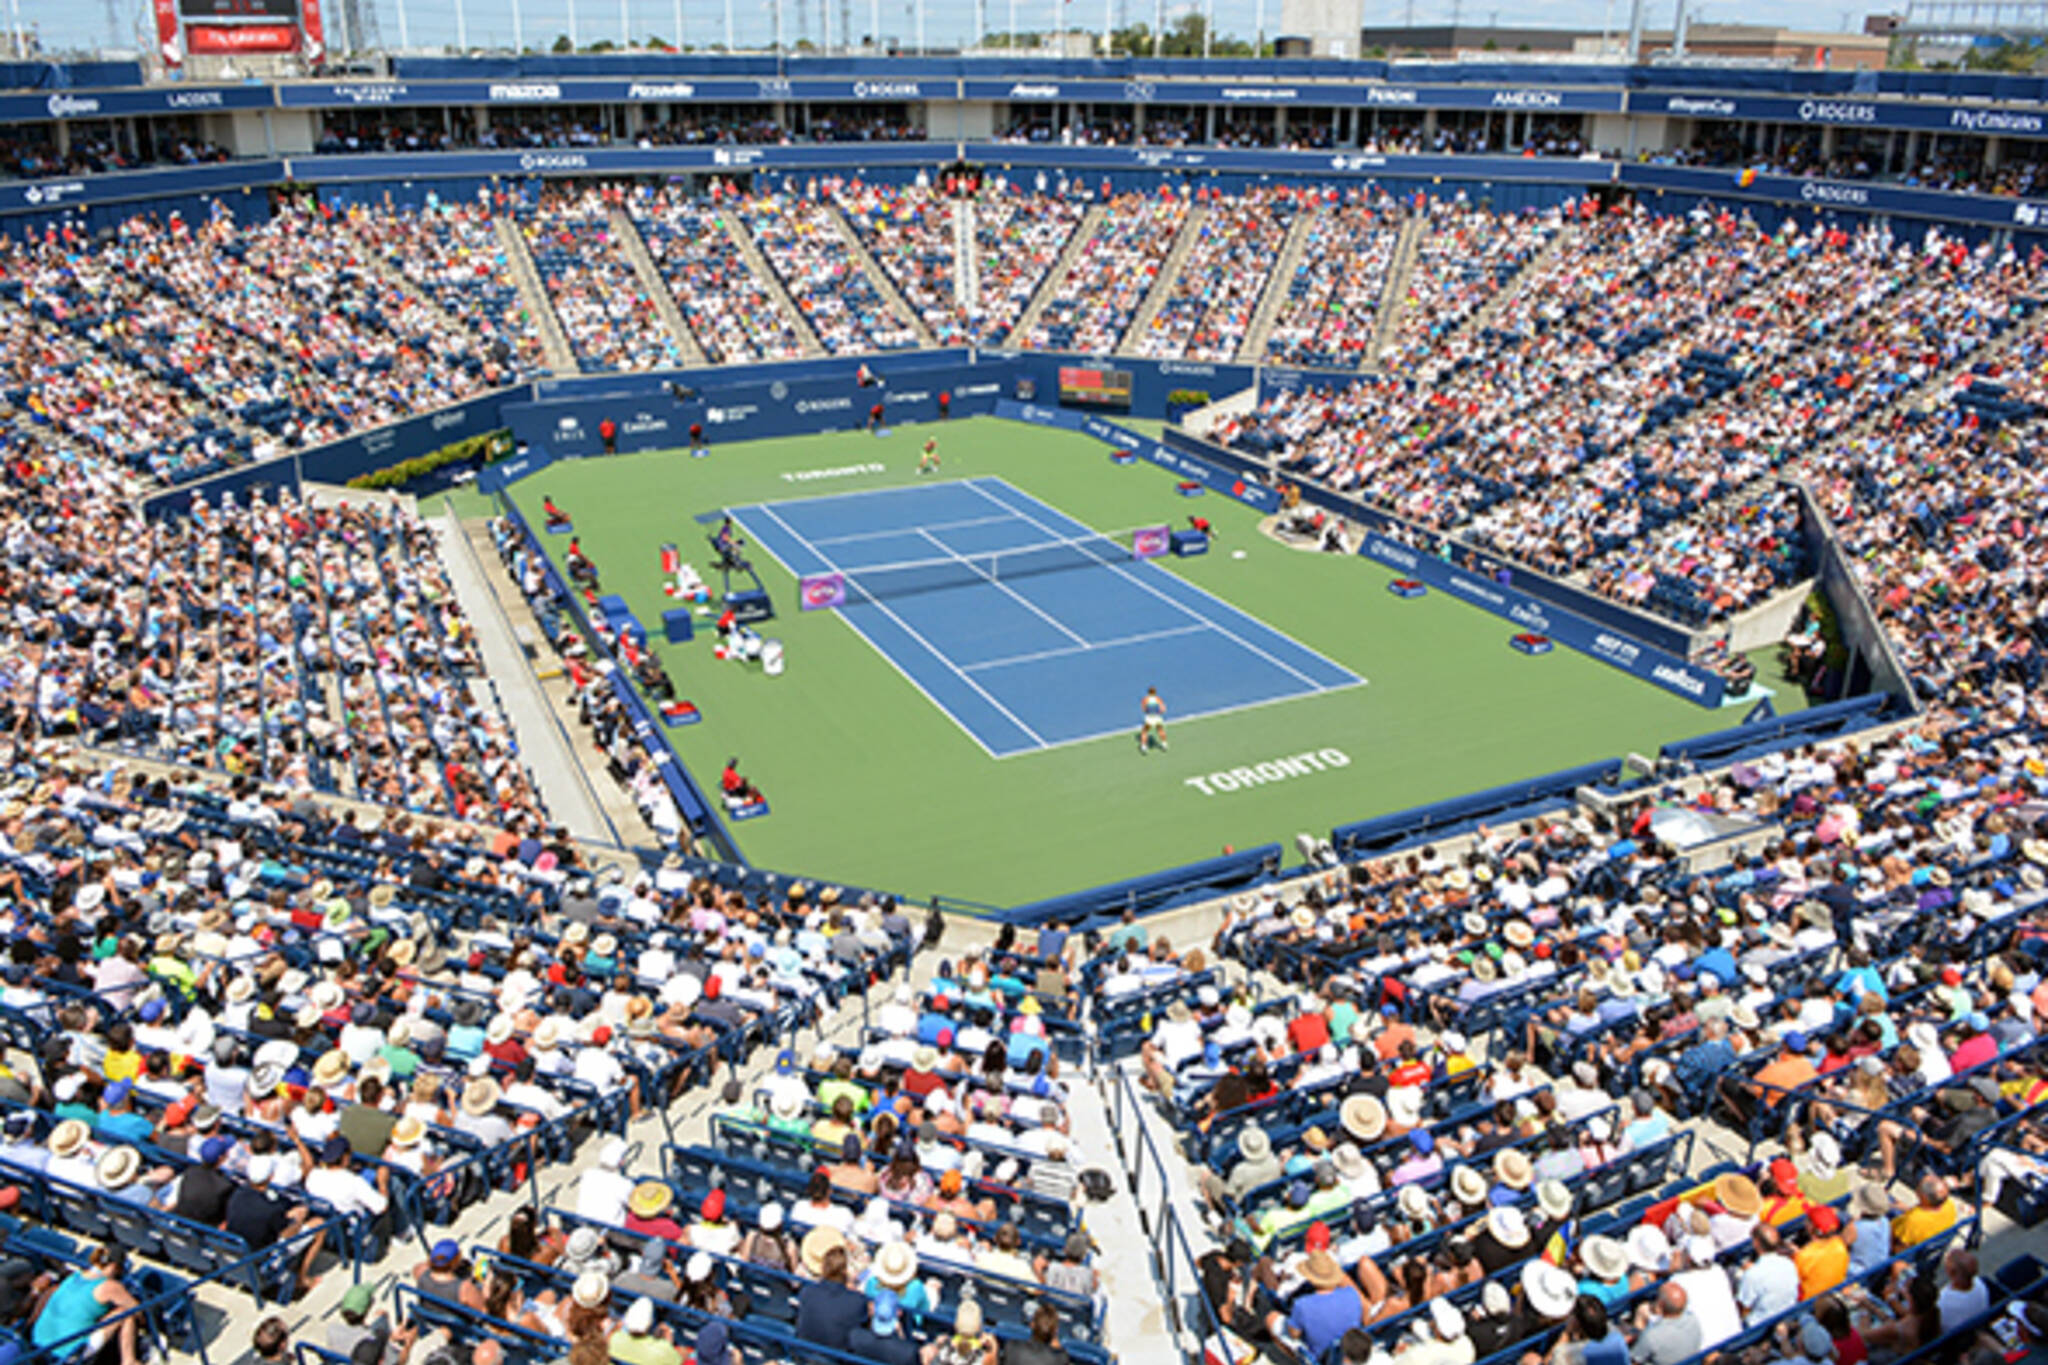 Rogers Cup toronto 2016